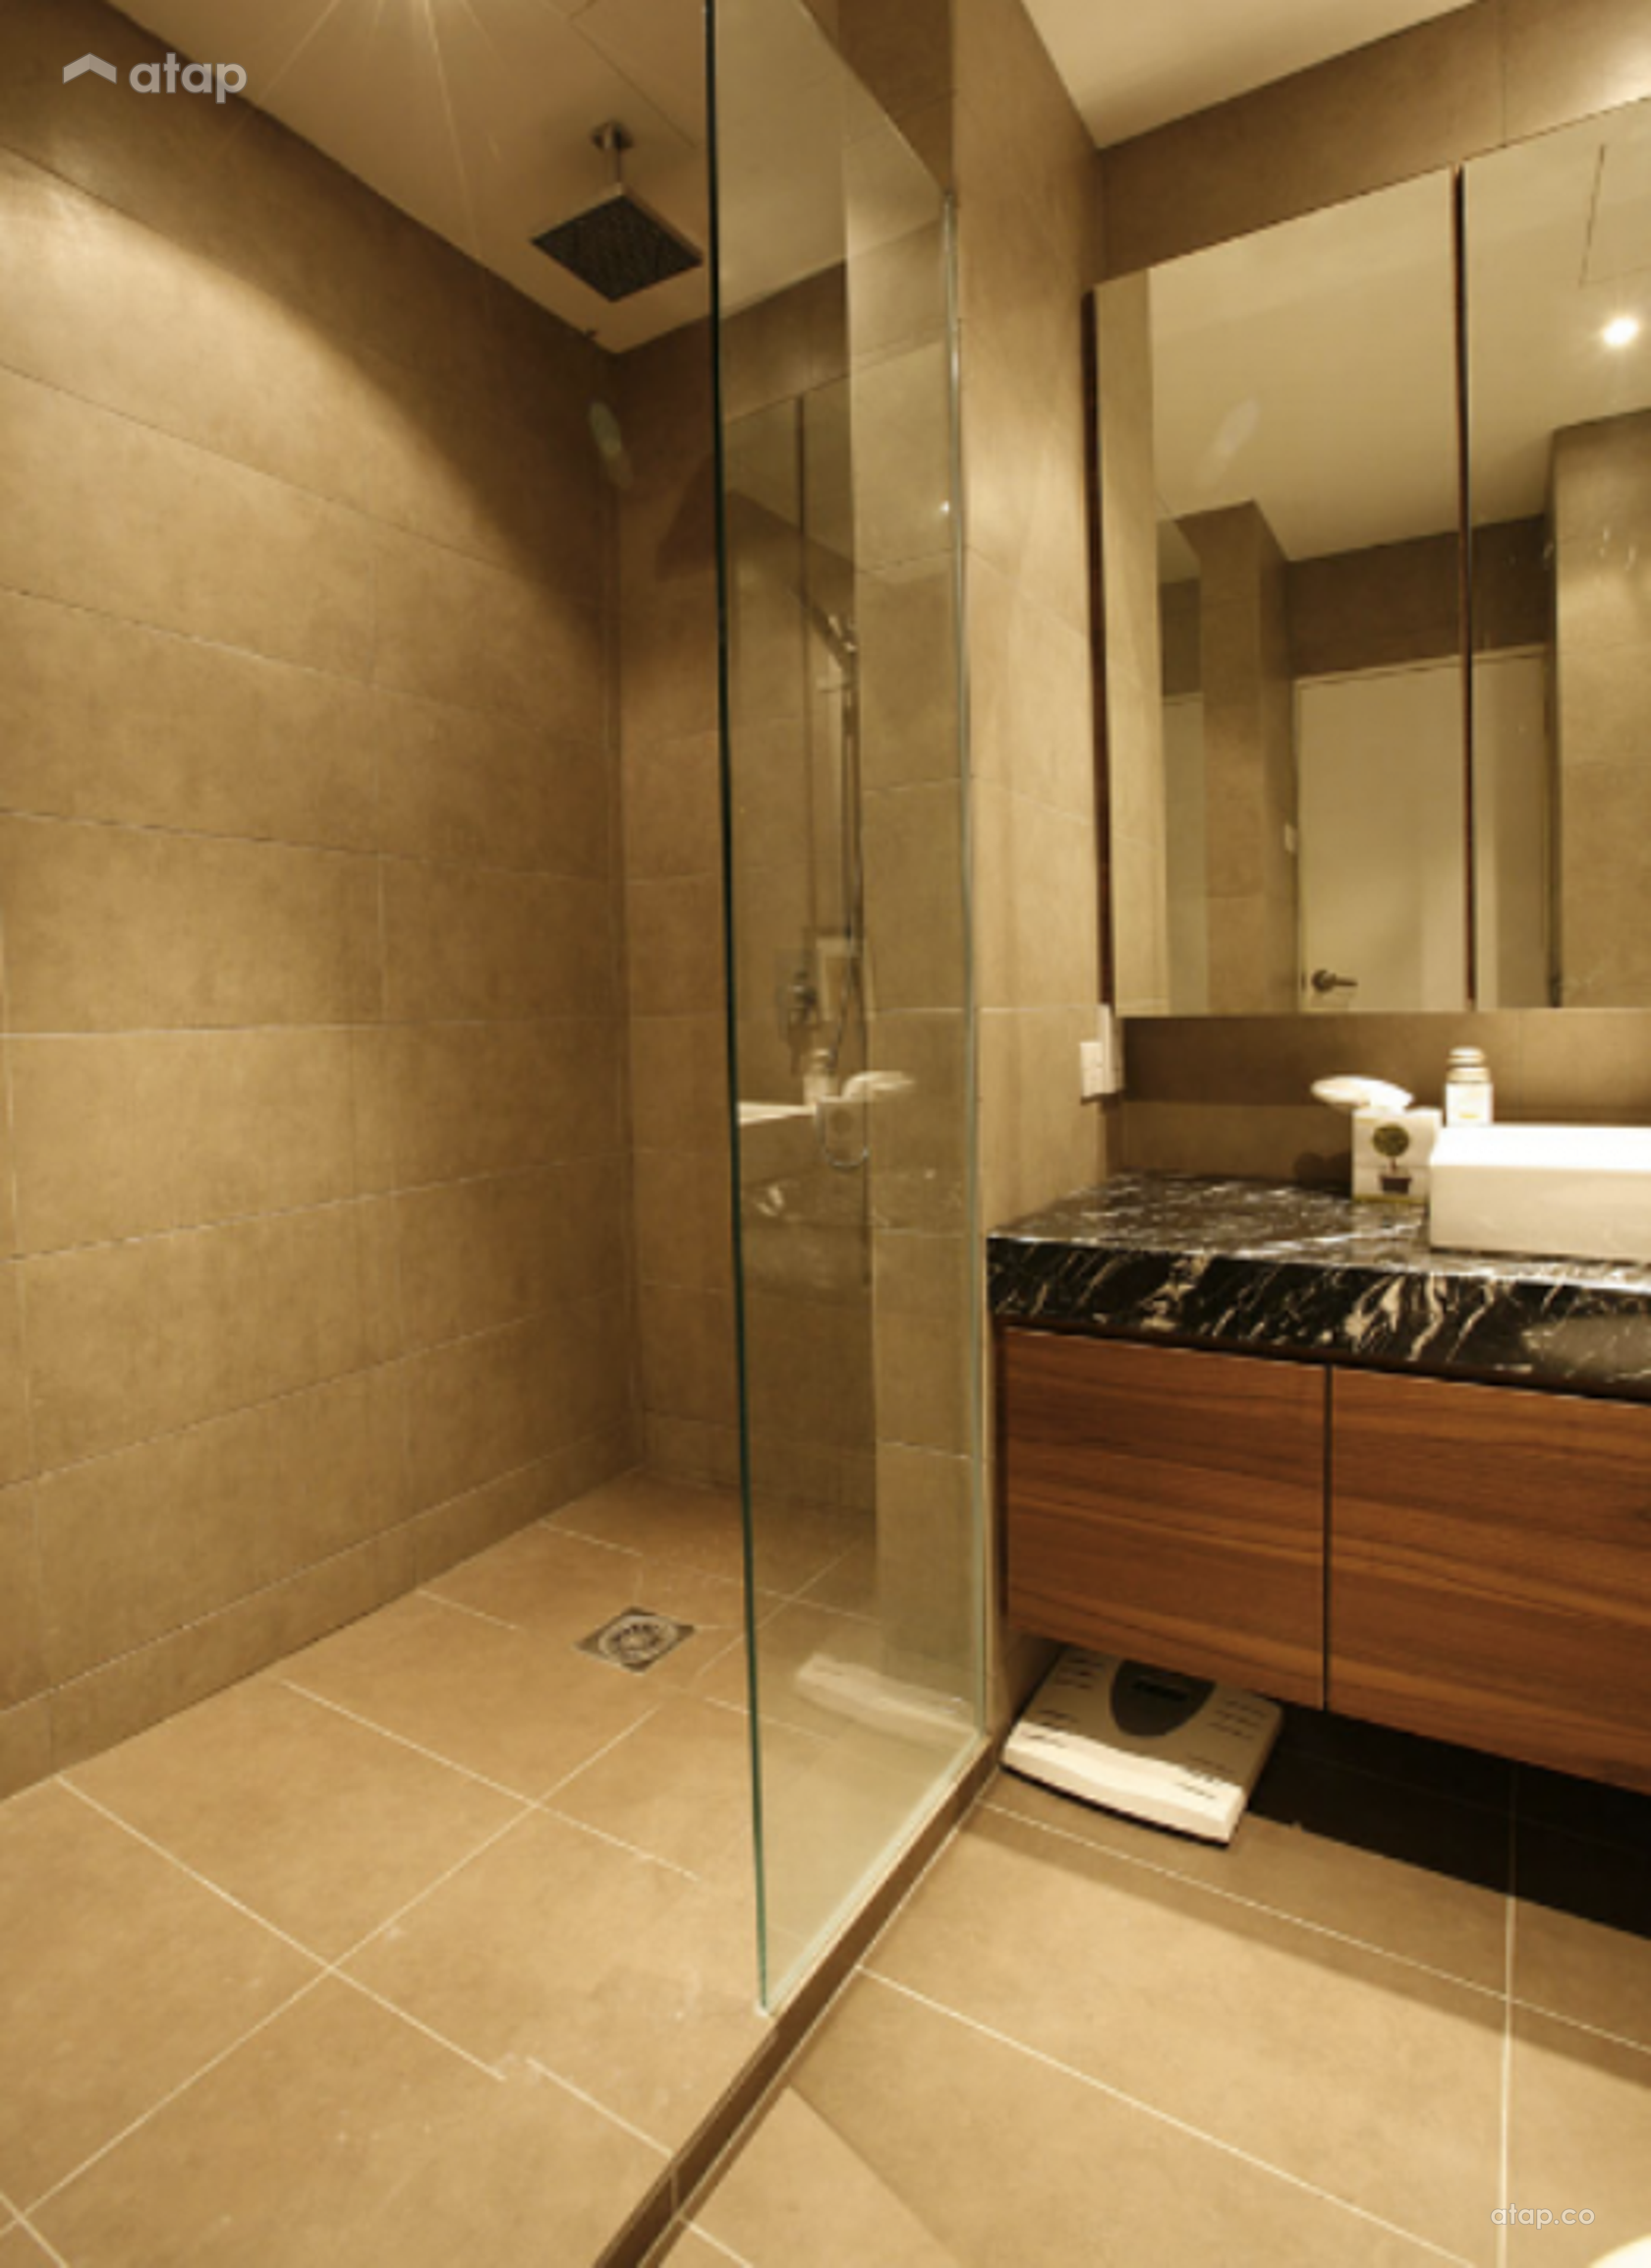 bathroom condominium design ideas photos malaysia atap co rh atap co